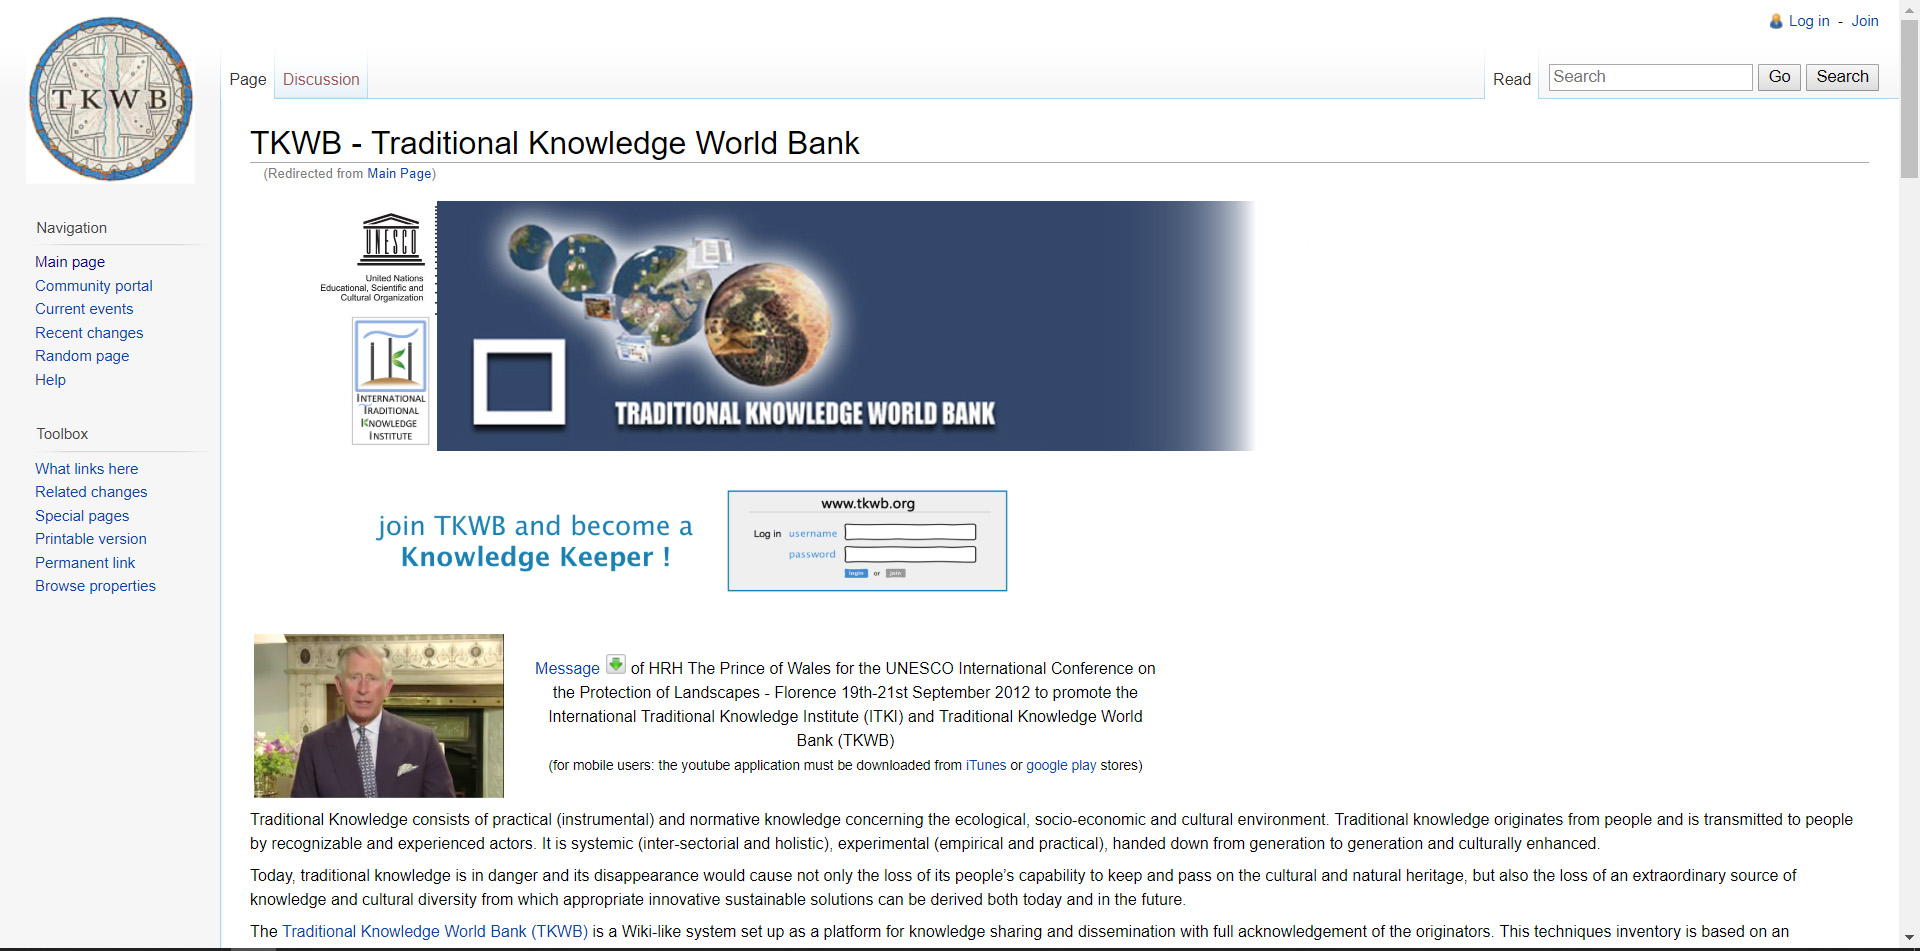 TKWB, traditional Knowledge World Bank,